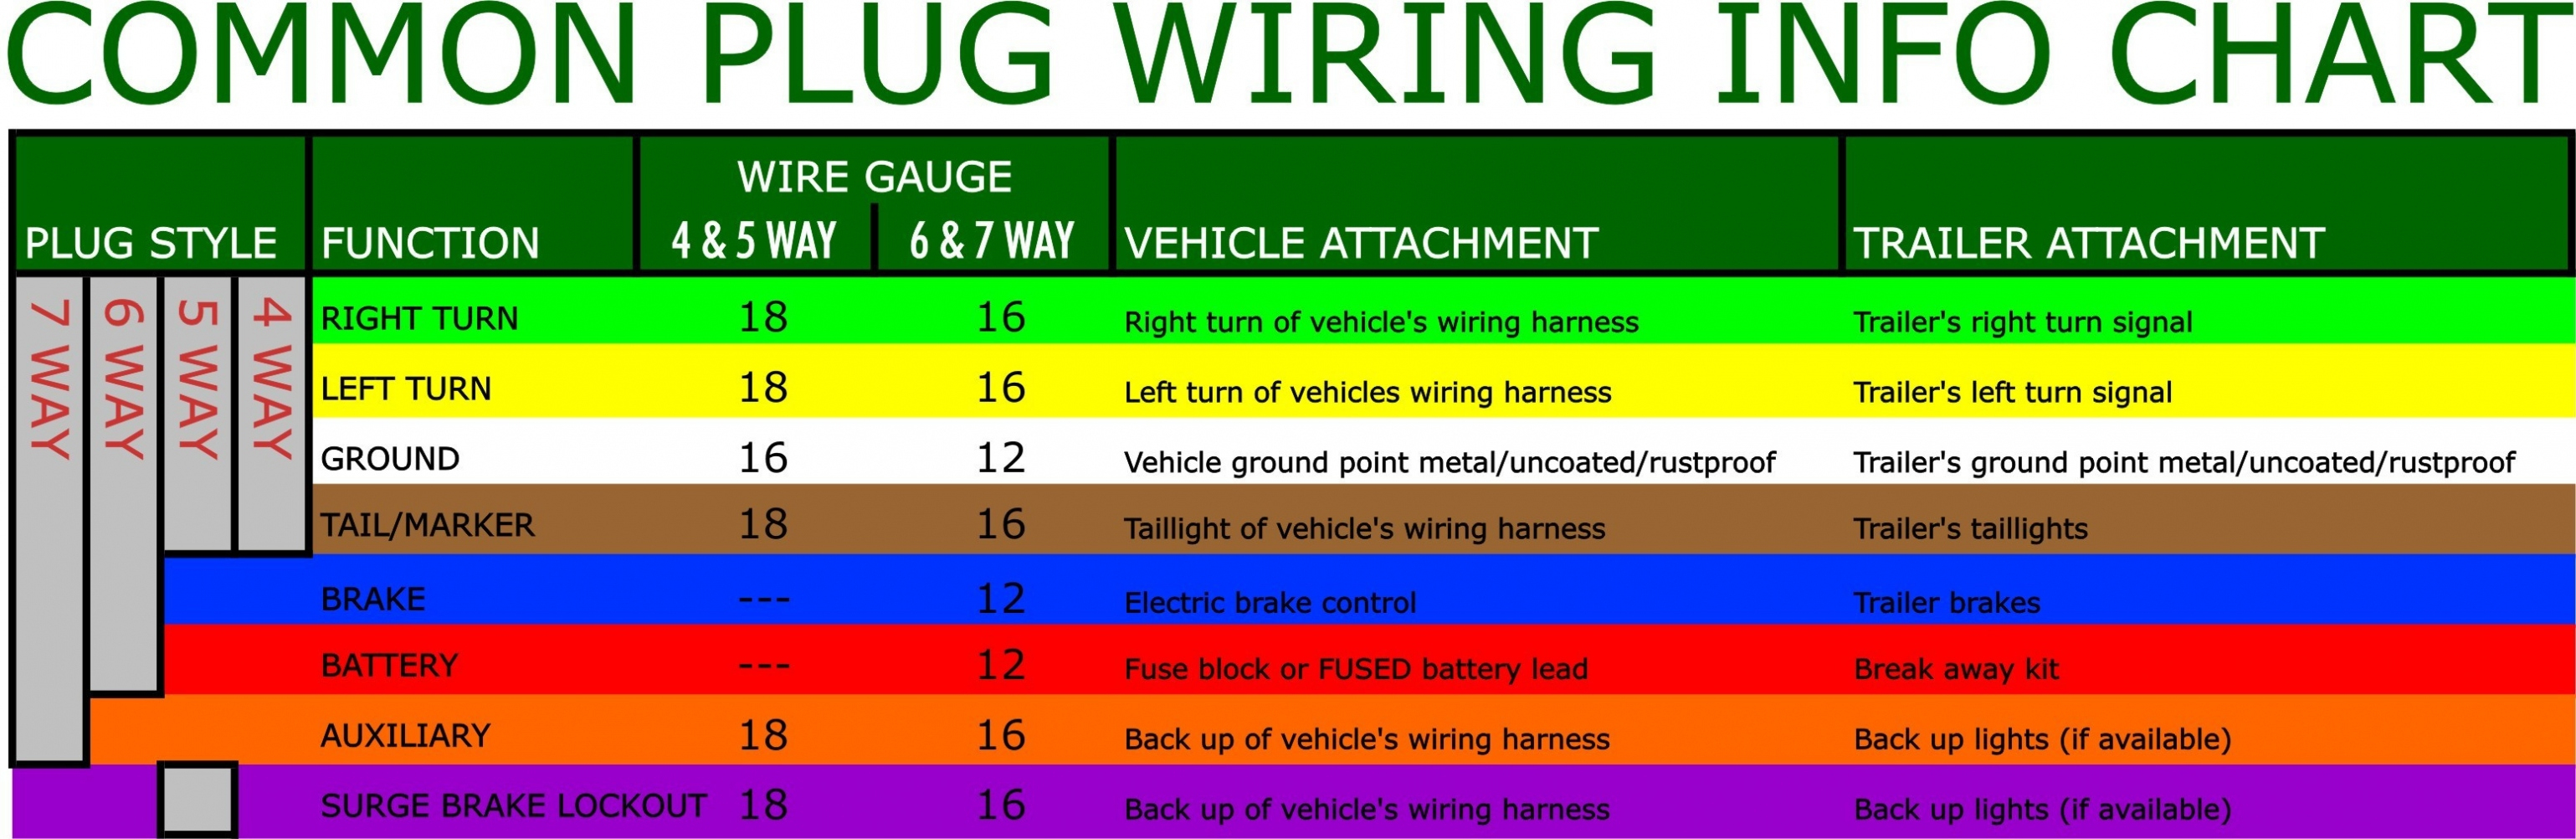 Wiring Diagram For 7 Pin Round Trailer Plug New Wiring Diagram 7 Pin - Trailer Wiring Diagram 7 Way Round